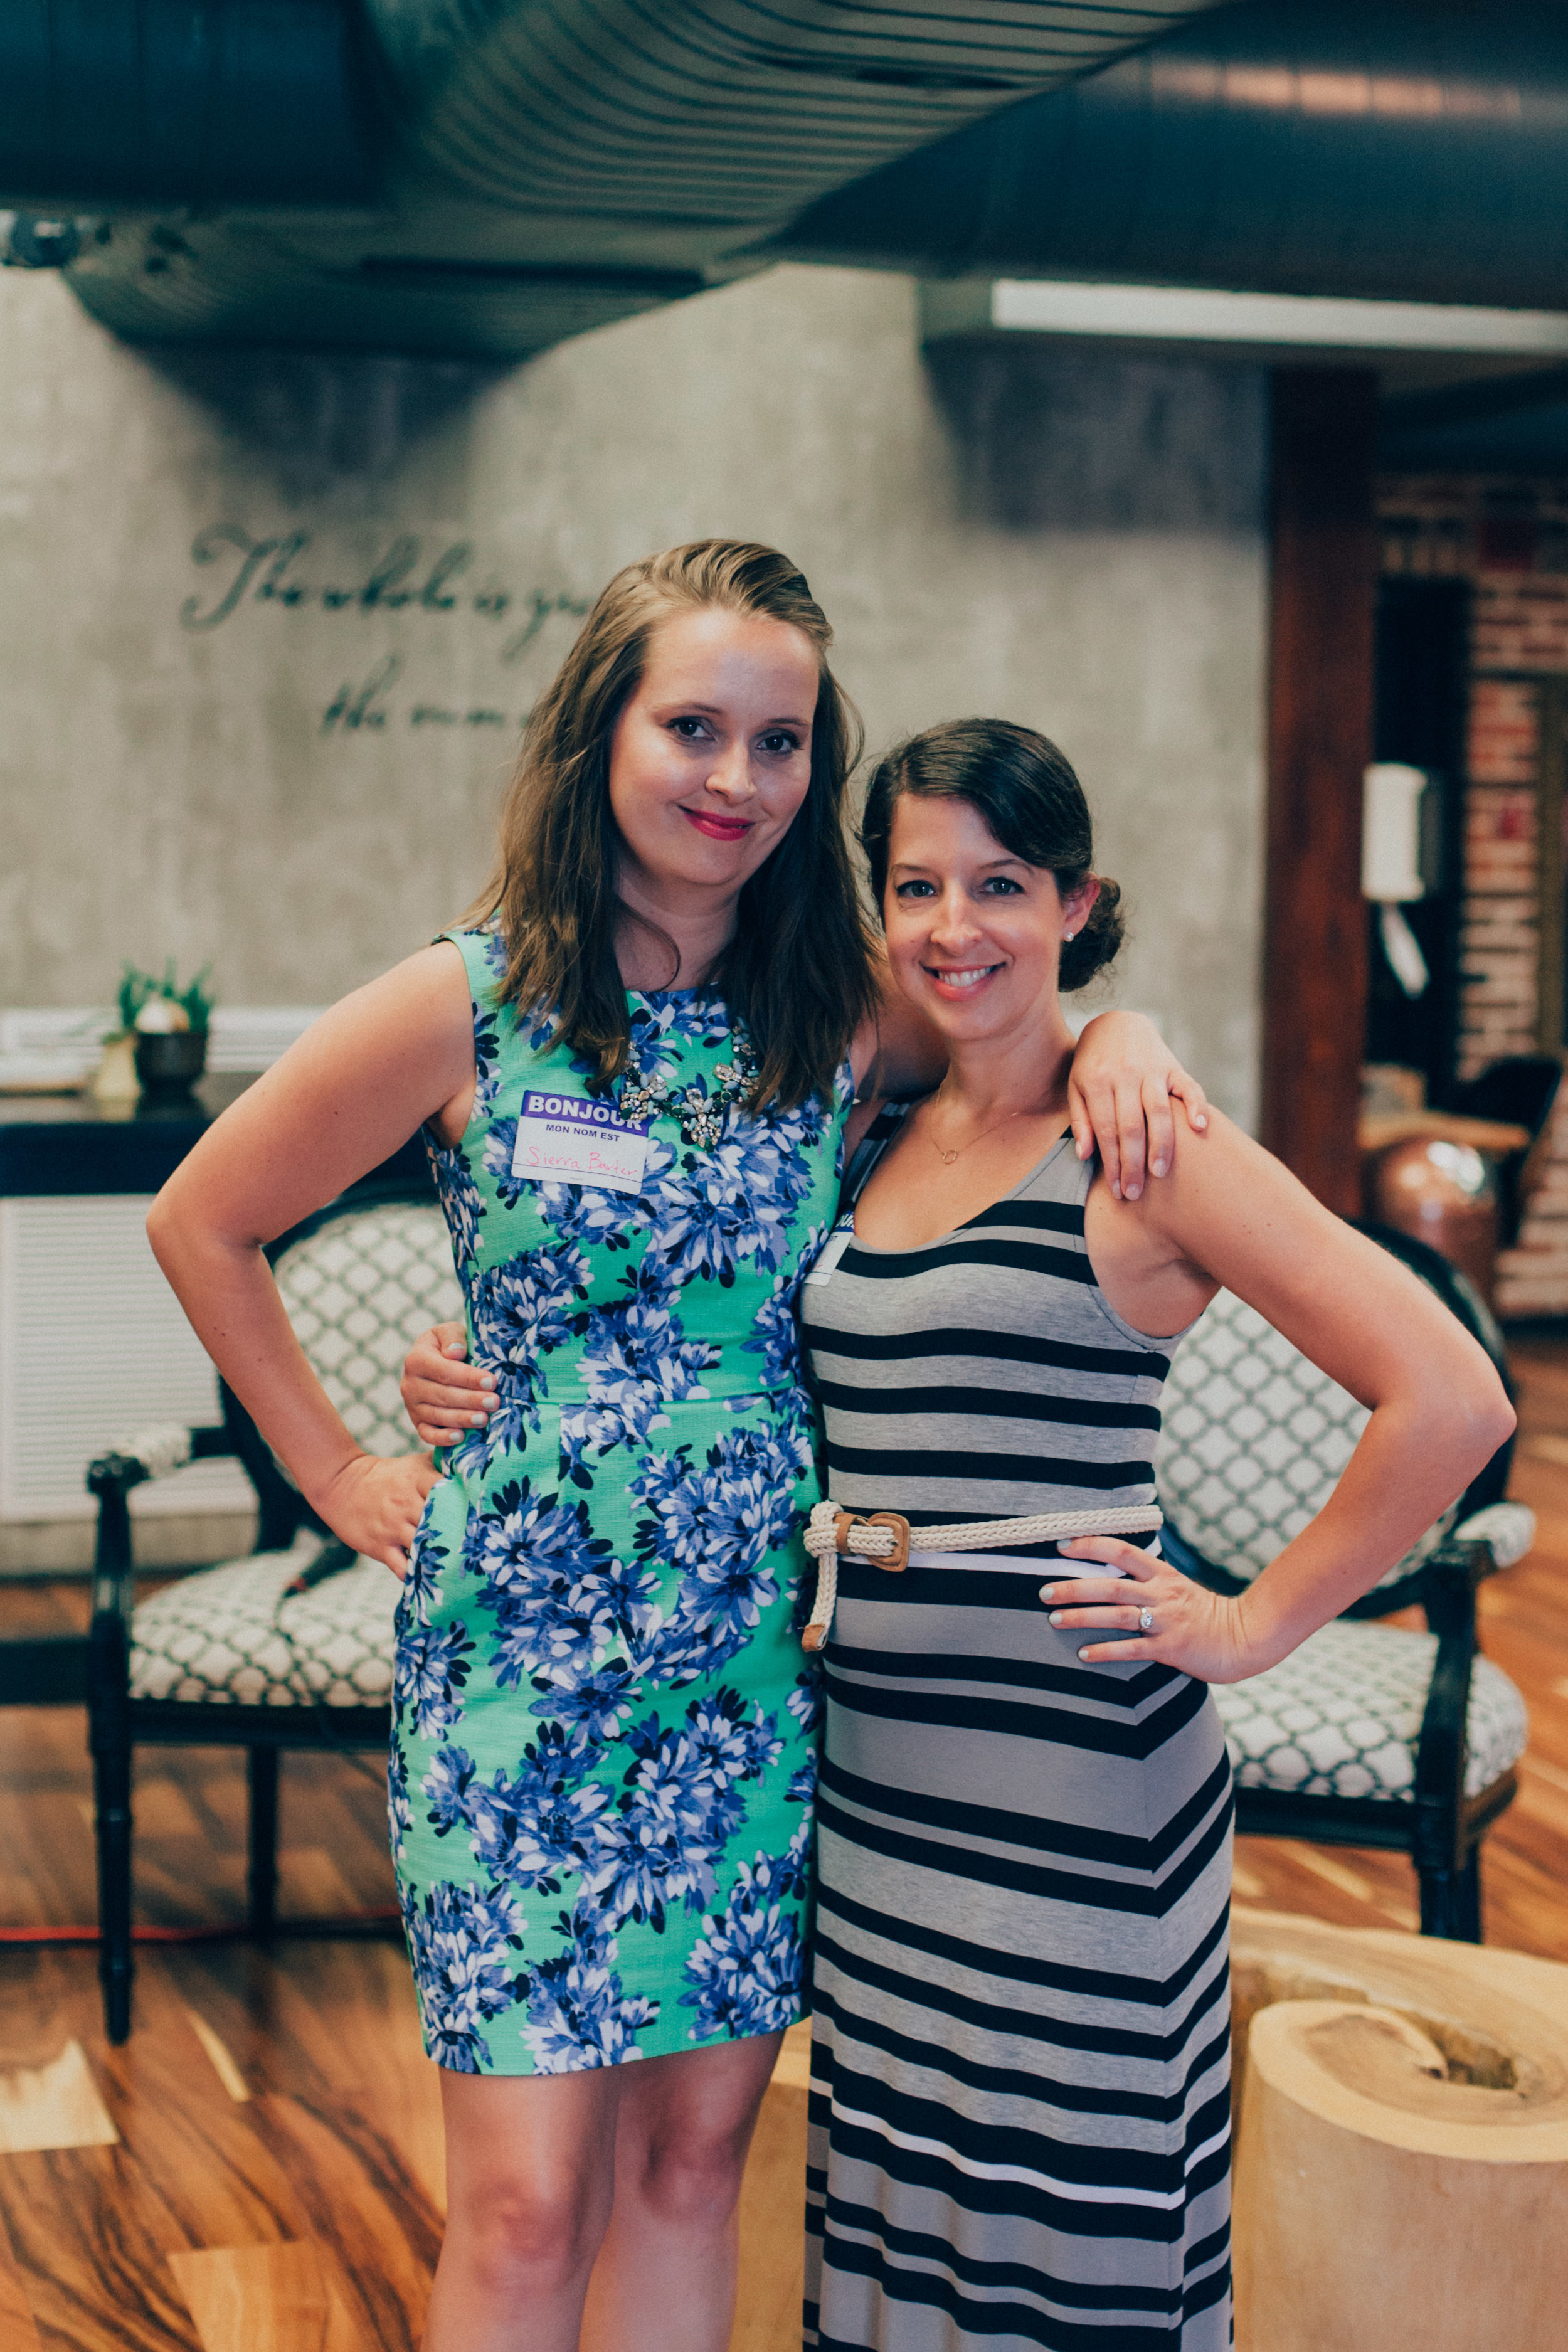 Sierra Barter, CEO & Co-Founder of The Lady Project | Kate Huot, Special Projects Manager at The Lady Project